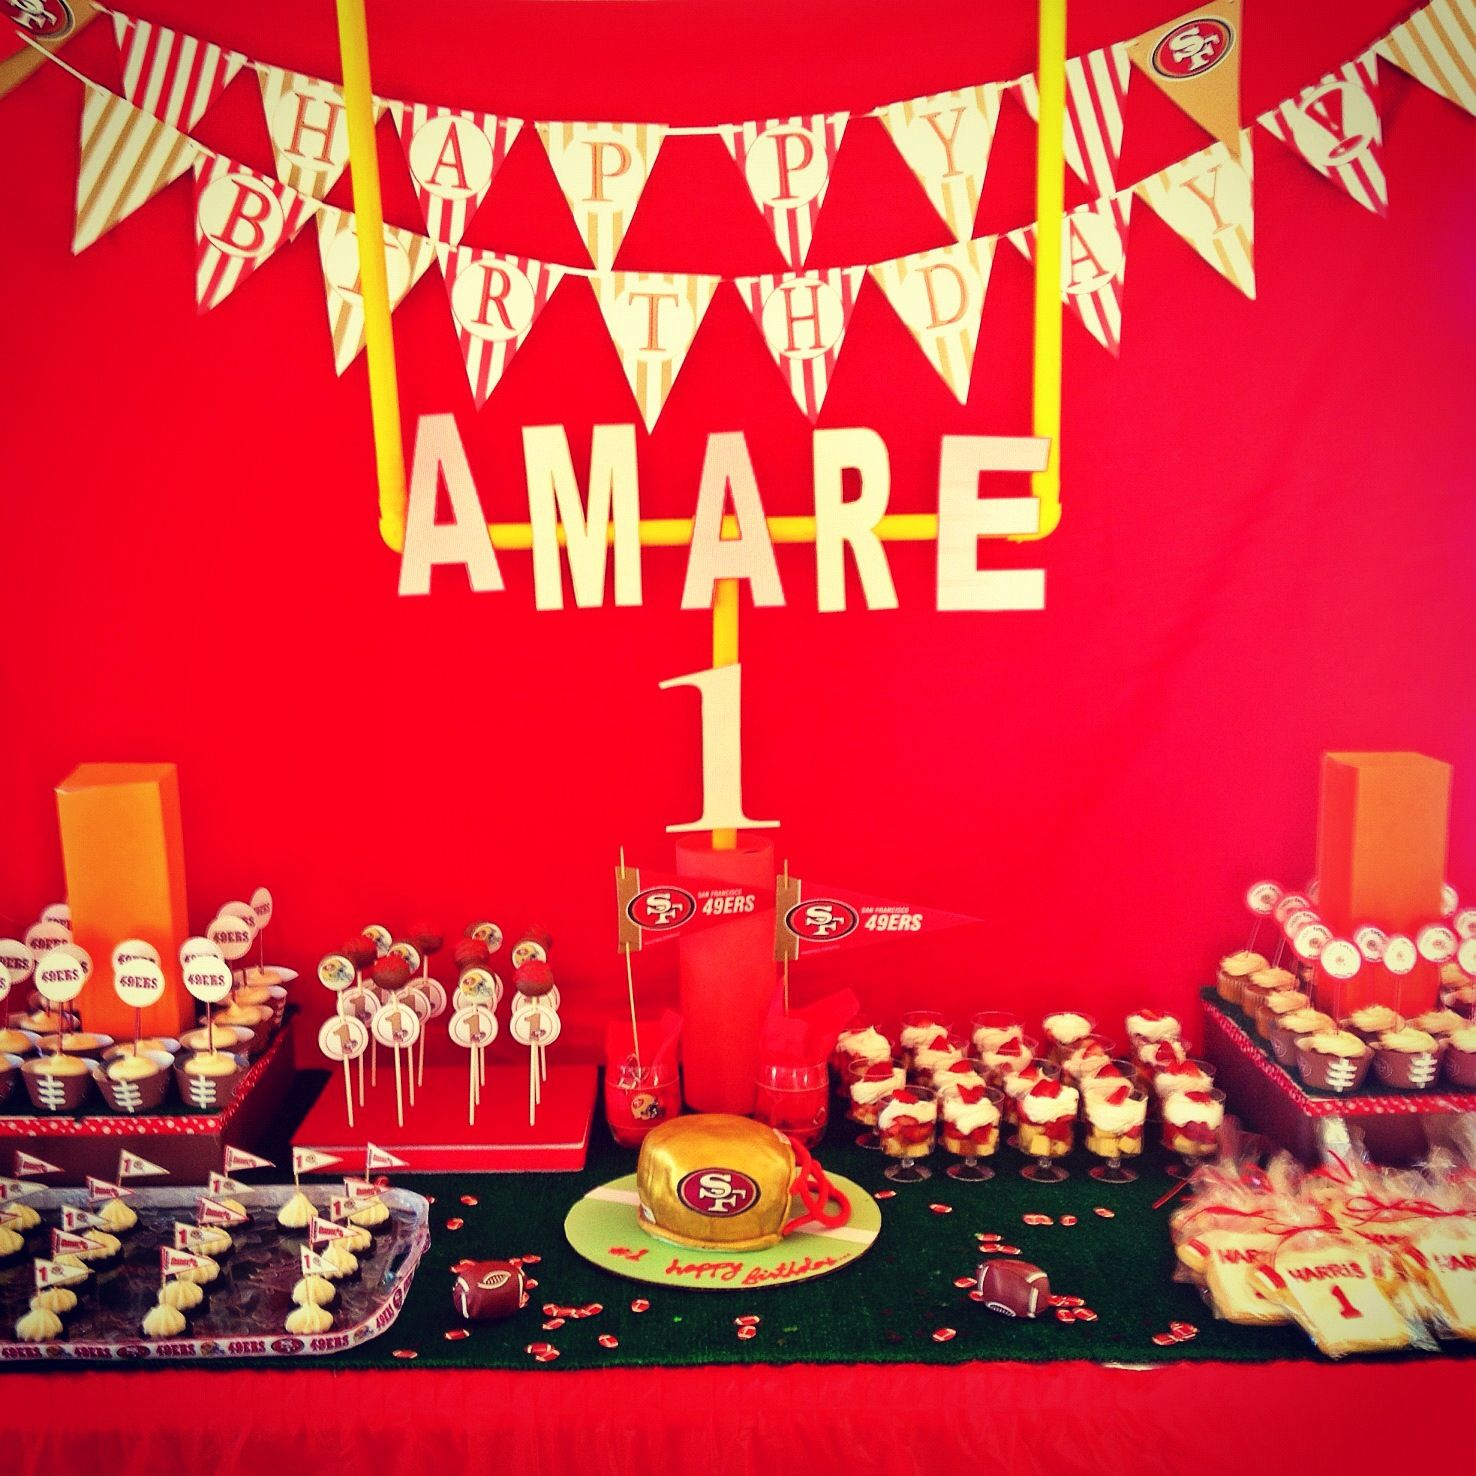 San Francisco 49ers Birthday Theme Dessert Table 30th Parties 4th Ideas